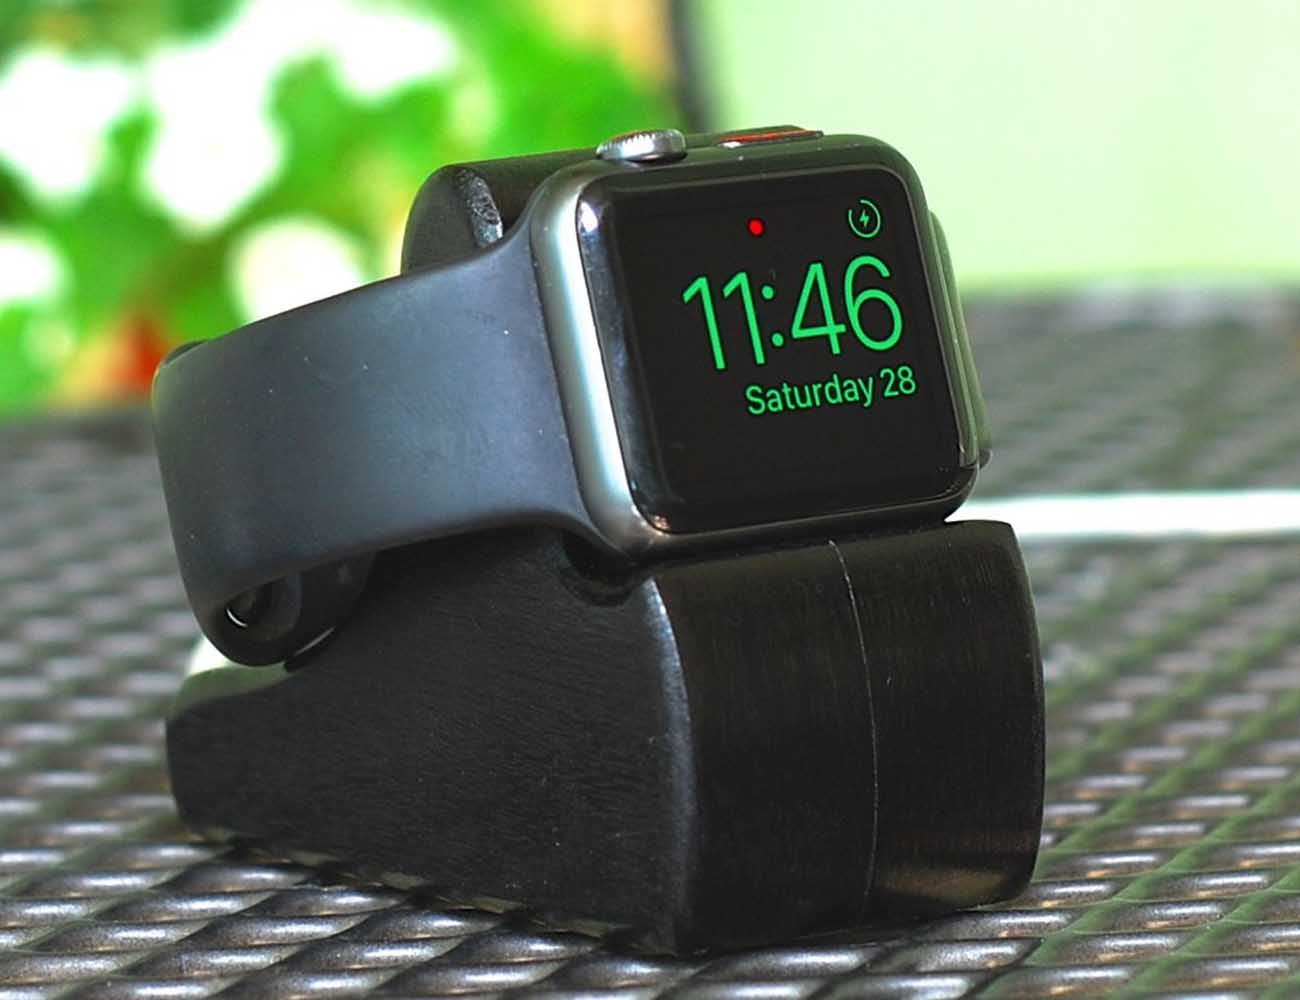 The RIPPLE Apple Watch Stand by SchuttenWorks